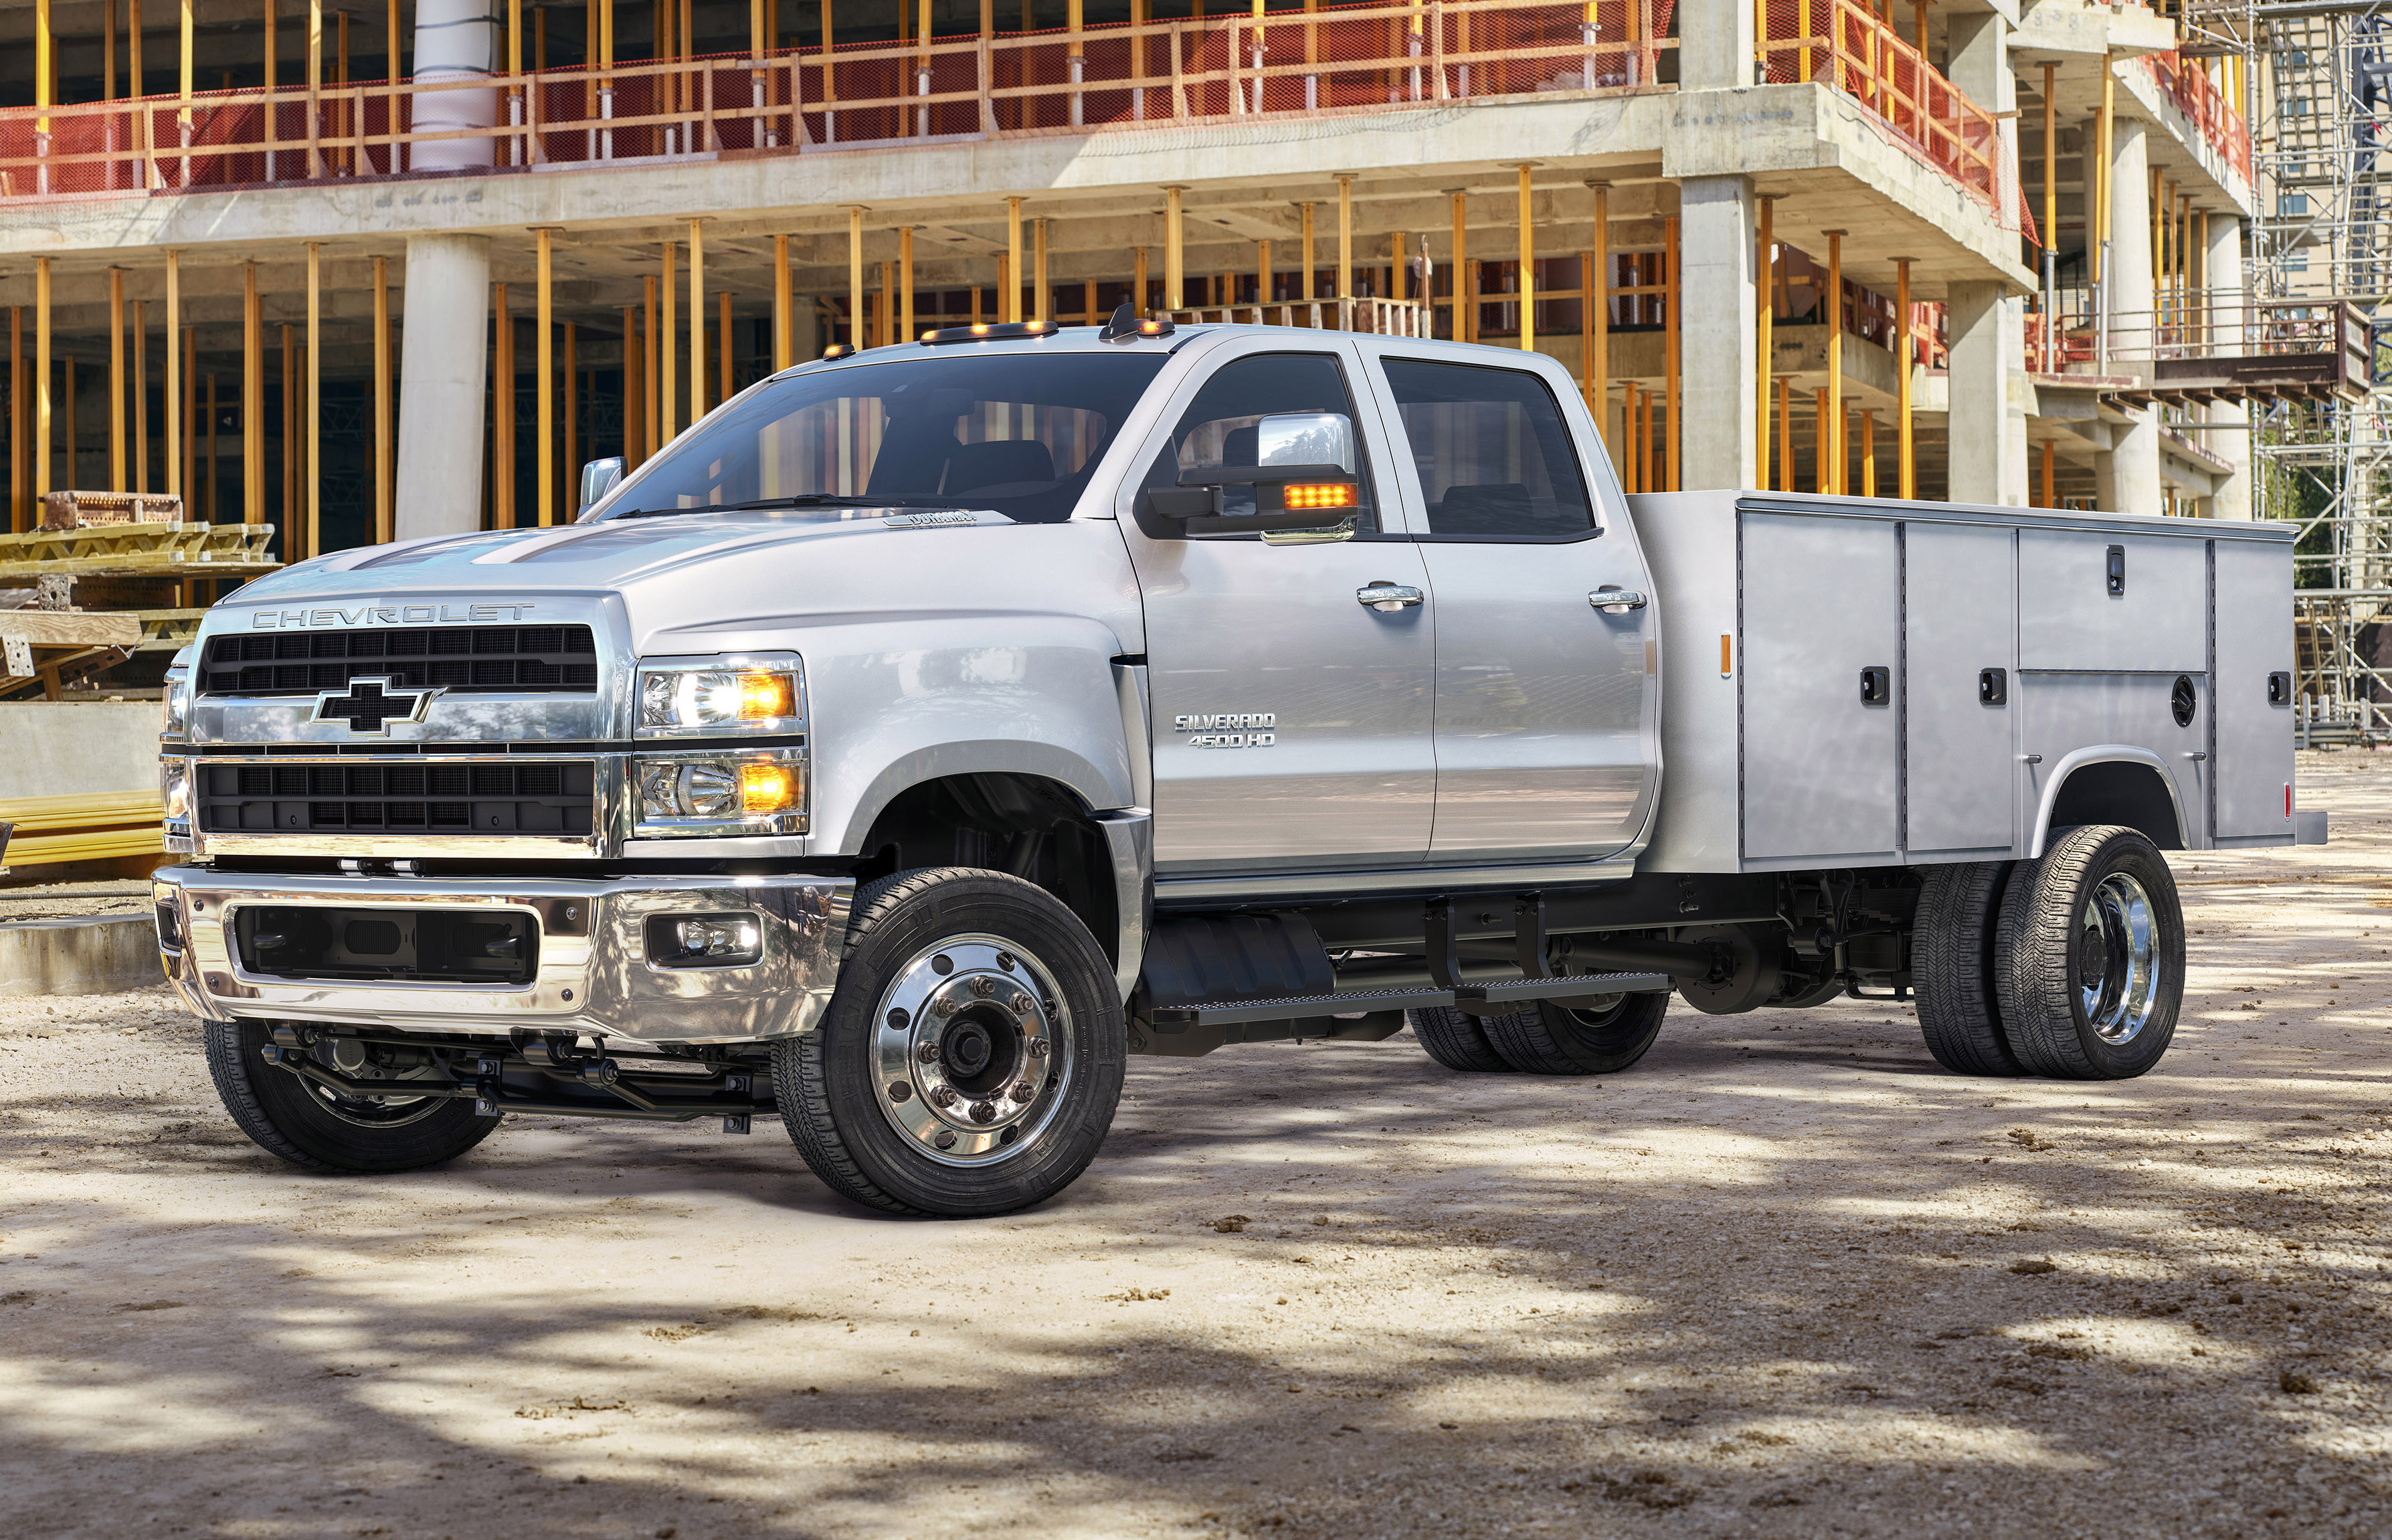 84 A 2020 Chevy Silverado Hd Photos